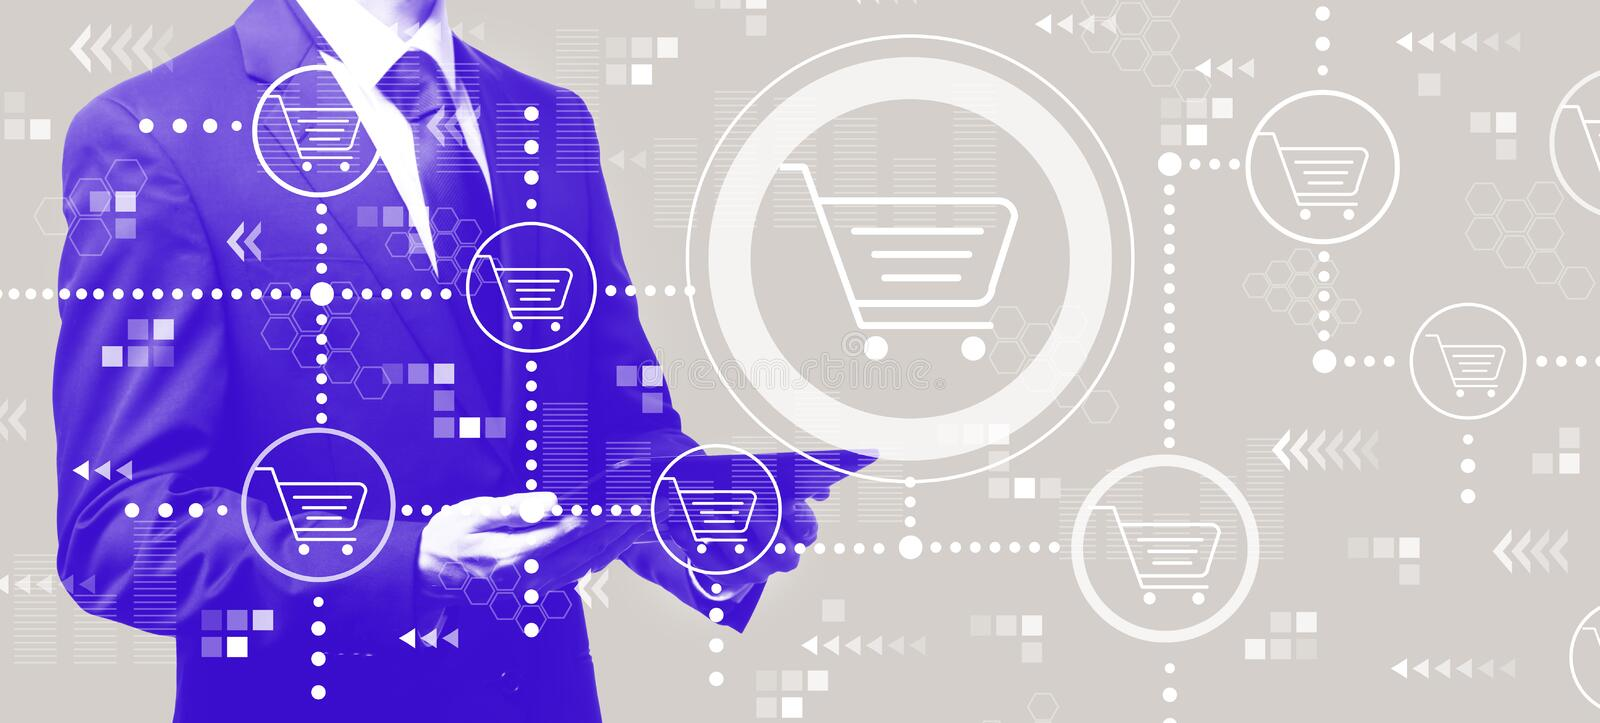 Online shopping theme with businessman holding a tablet. Computer stock illustration